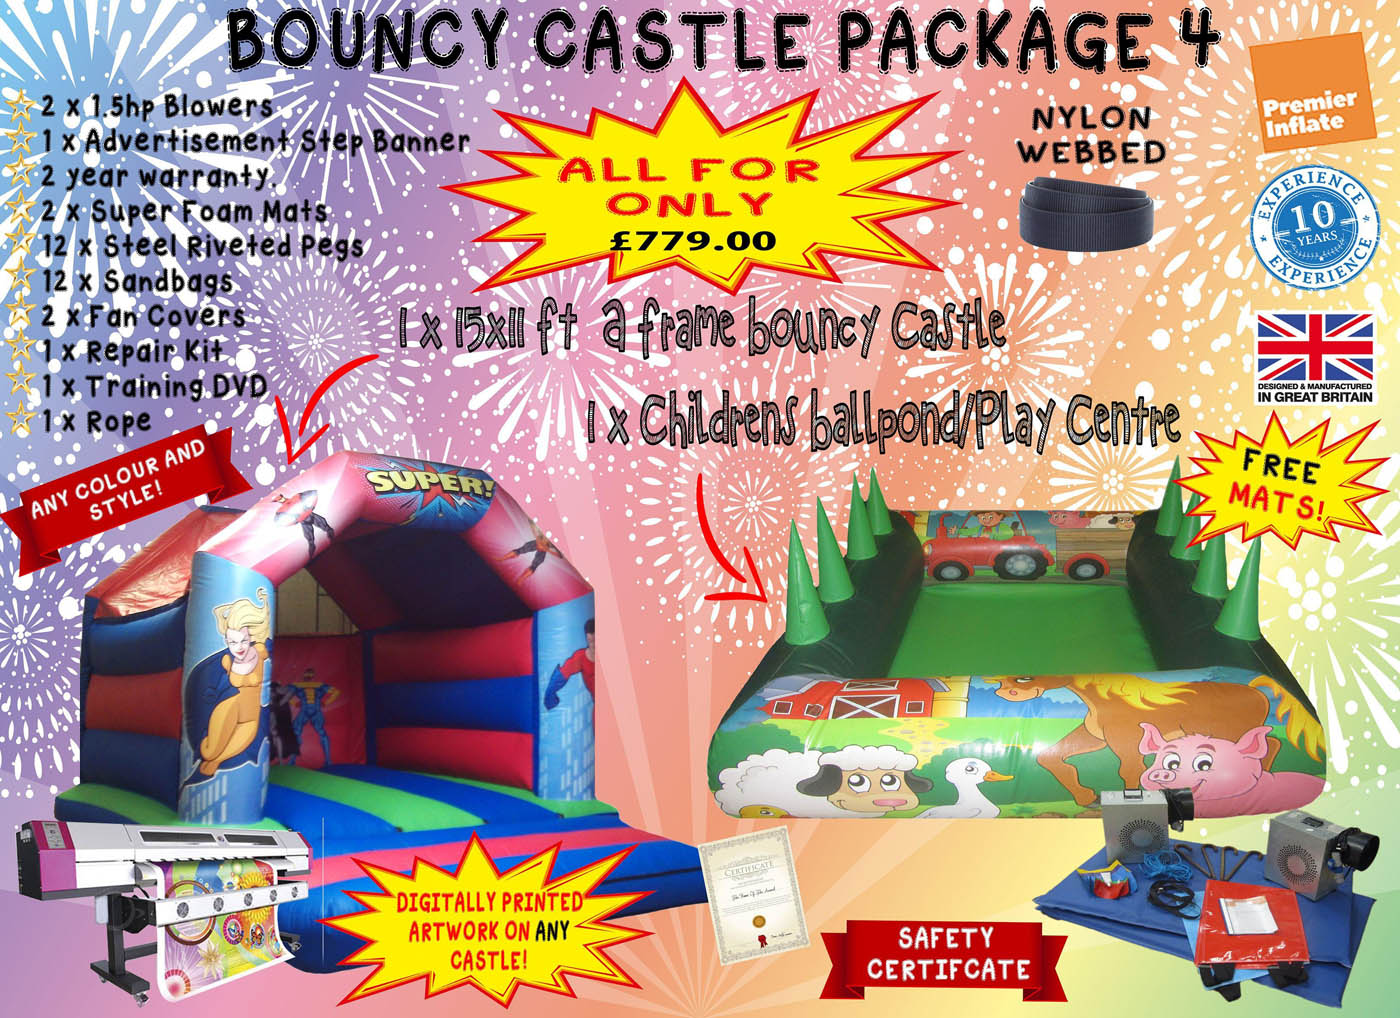 Bouncy Castle Package Deals for Sale UK